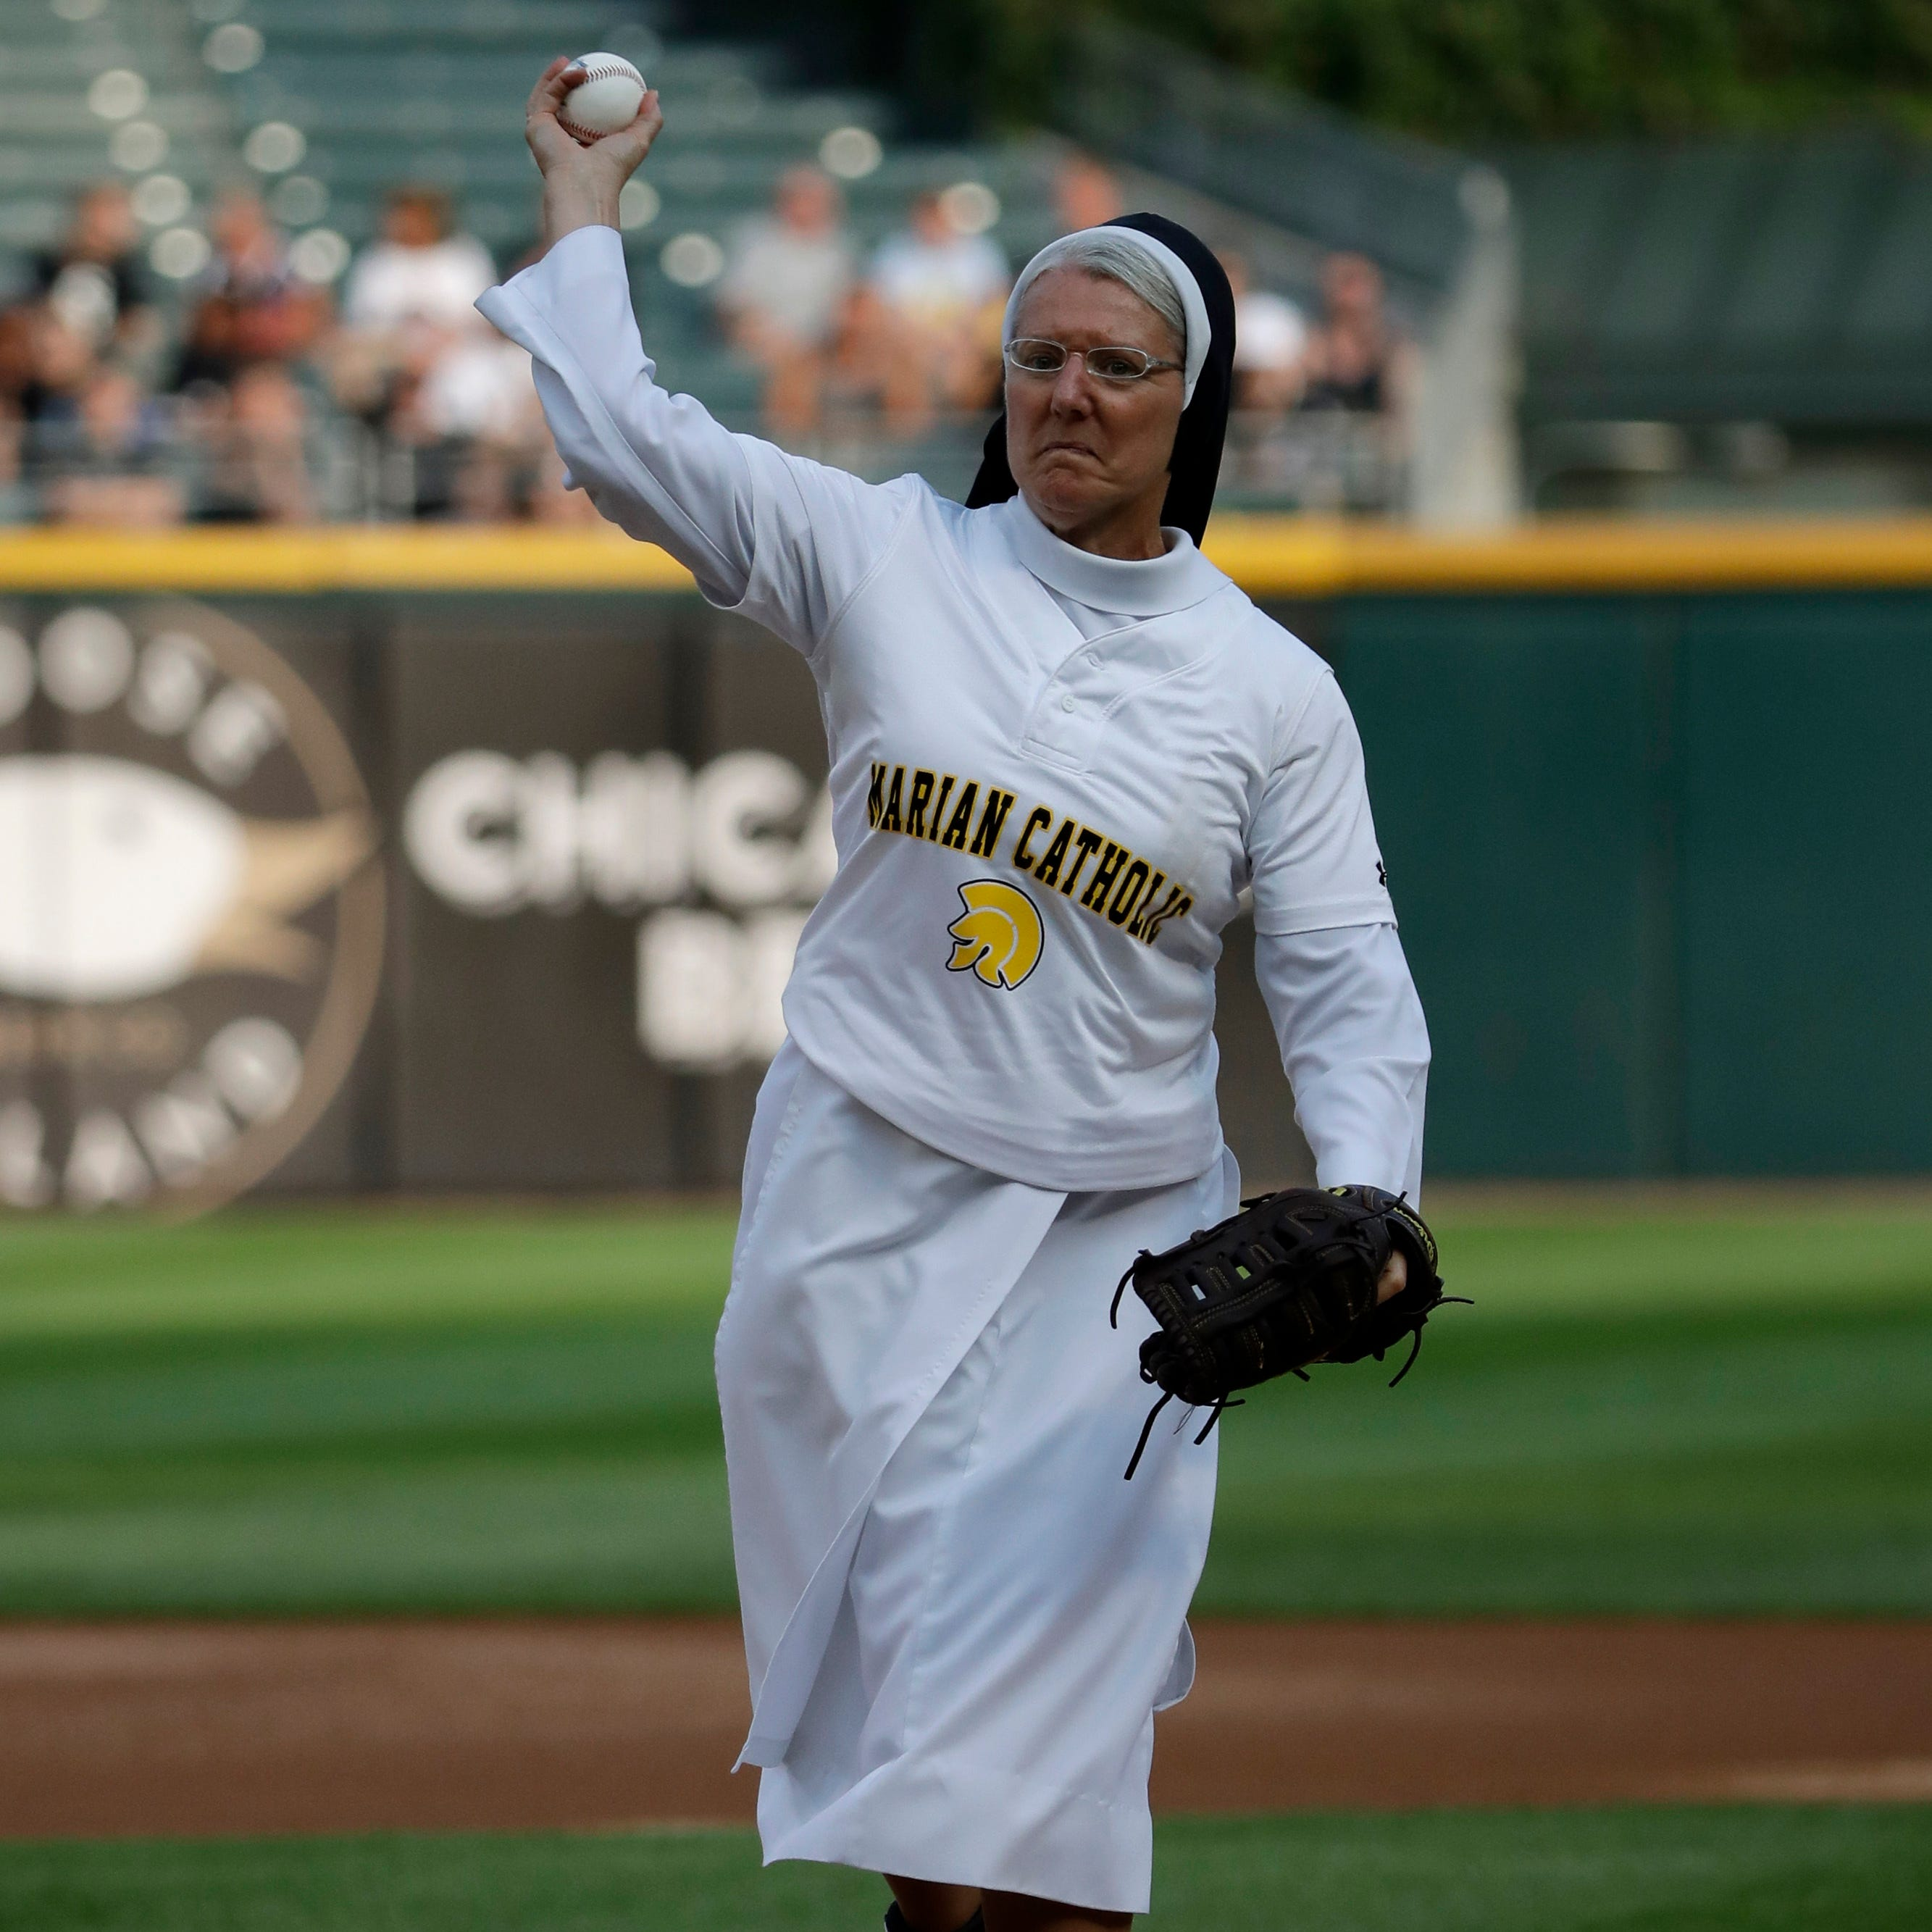 Bobblehead to honor nun from St. Cloud whose first pitch lit up the sports world